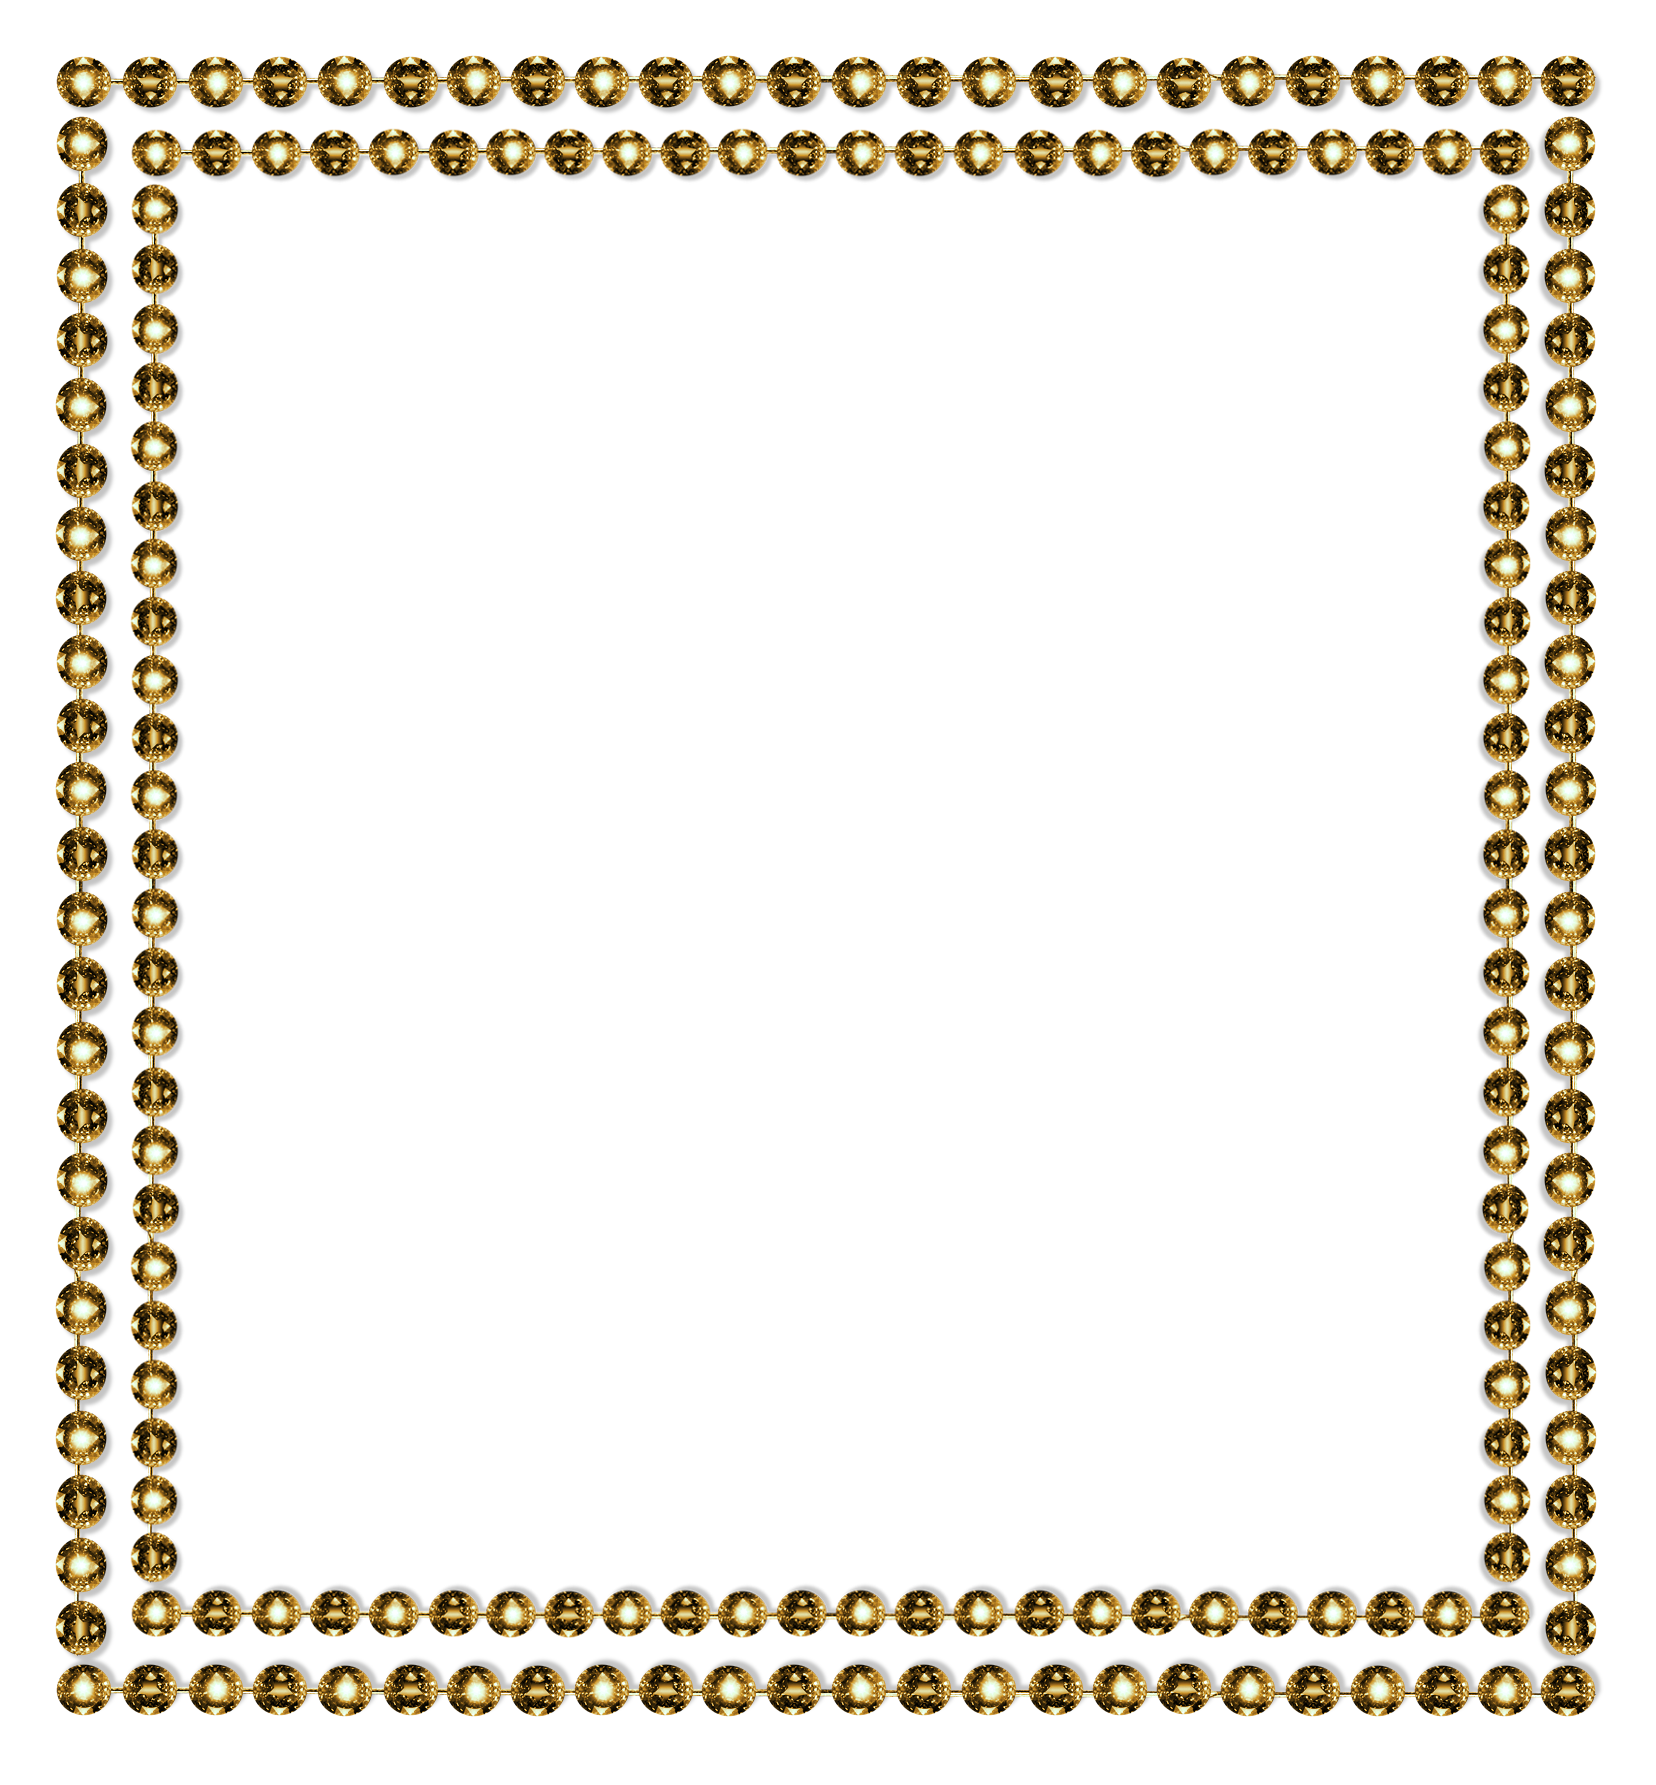 Diamond frame png. Border gold by jssanda